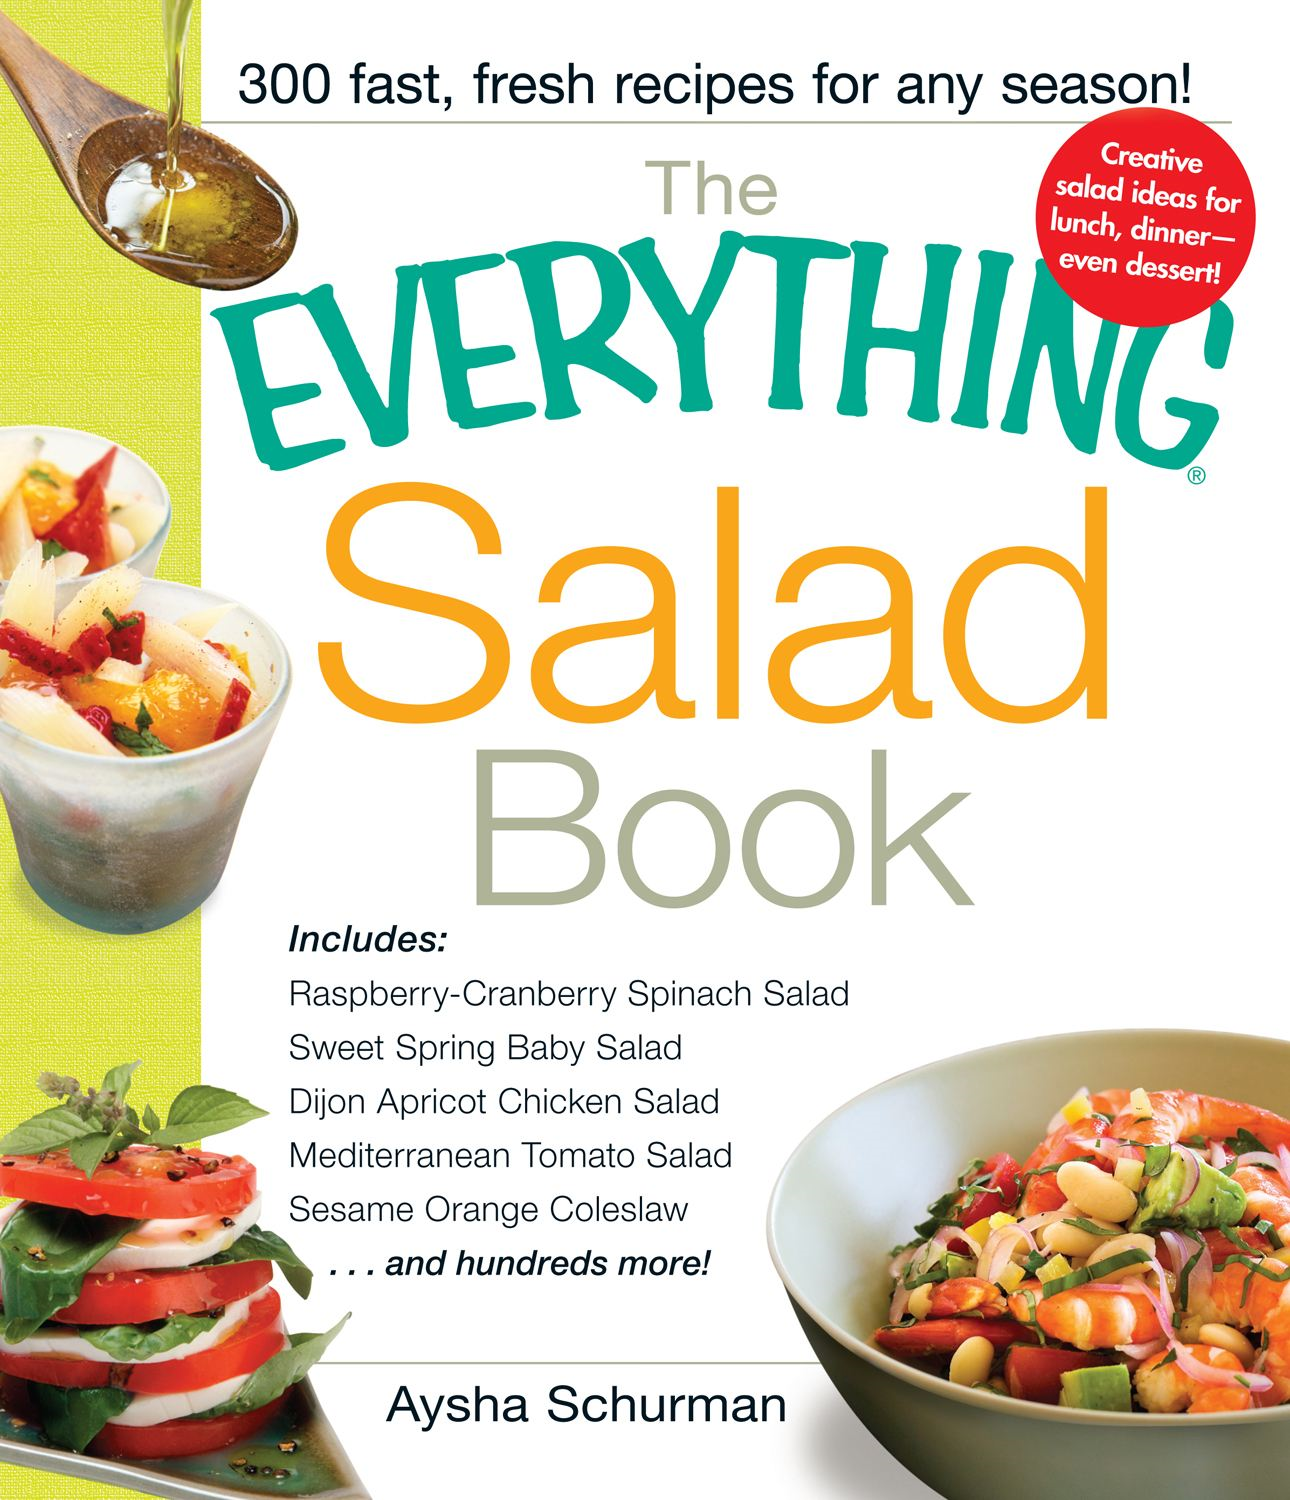 The Everything Salad Book: Includes Raspberry-Cranberry Spinich Salad, Sweet Spring Baby Salad, Dijon Apricot Chicken Salad, Mediterranean Tomato Salad, Sesame Orange Coleslaw By: Aysha Schurman